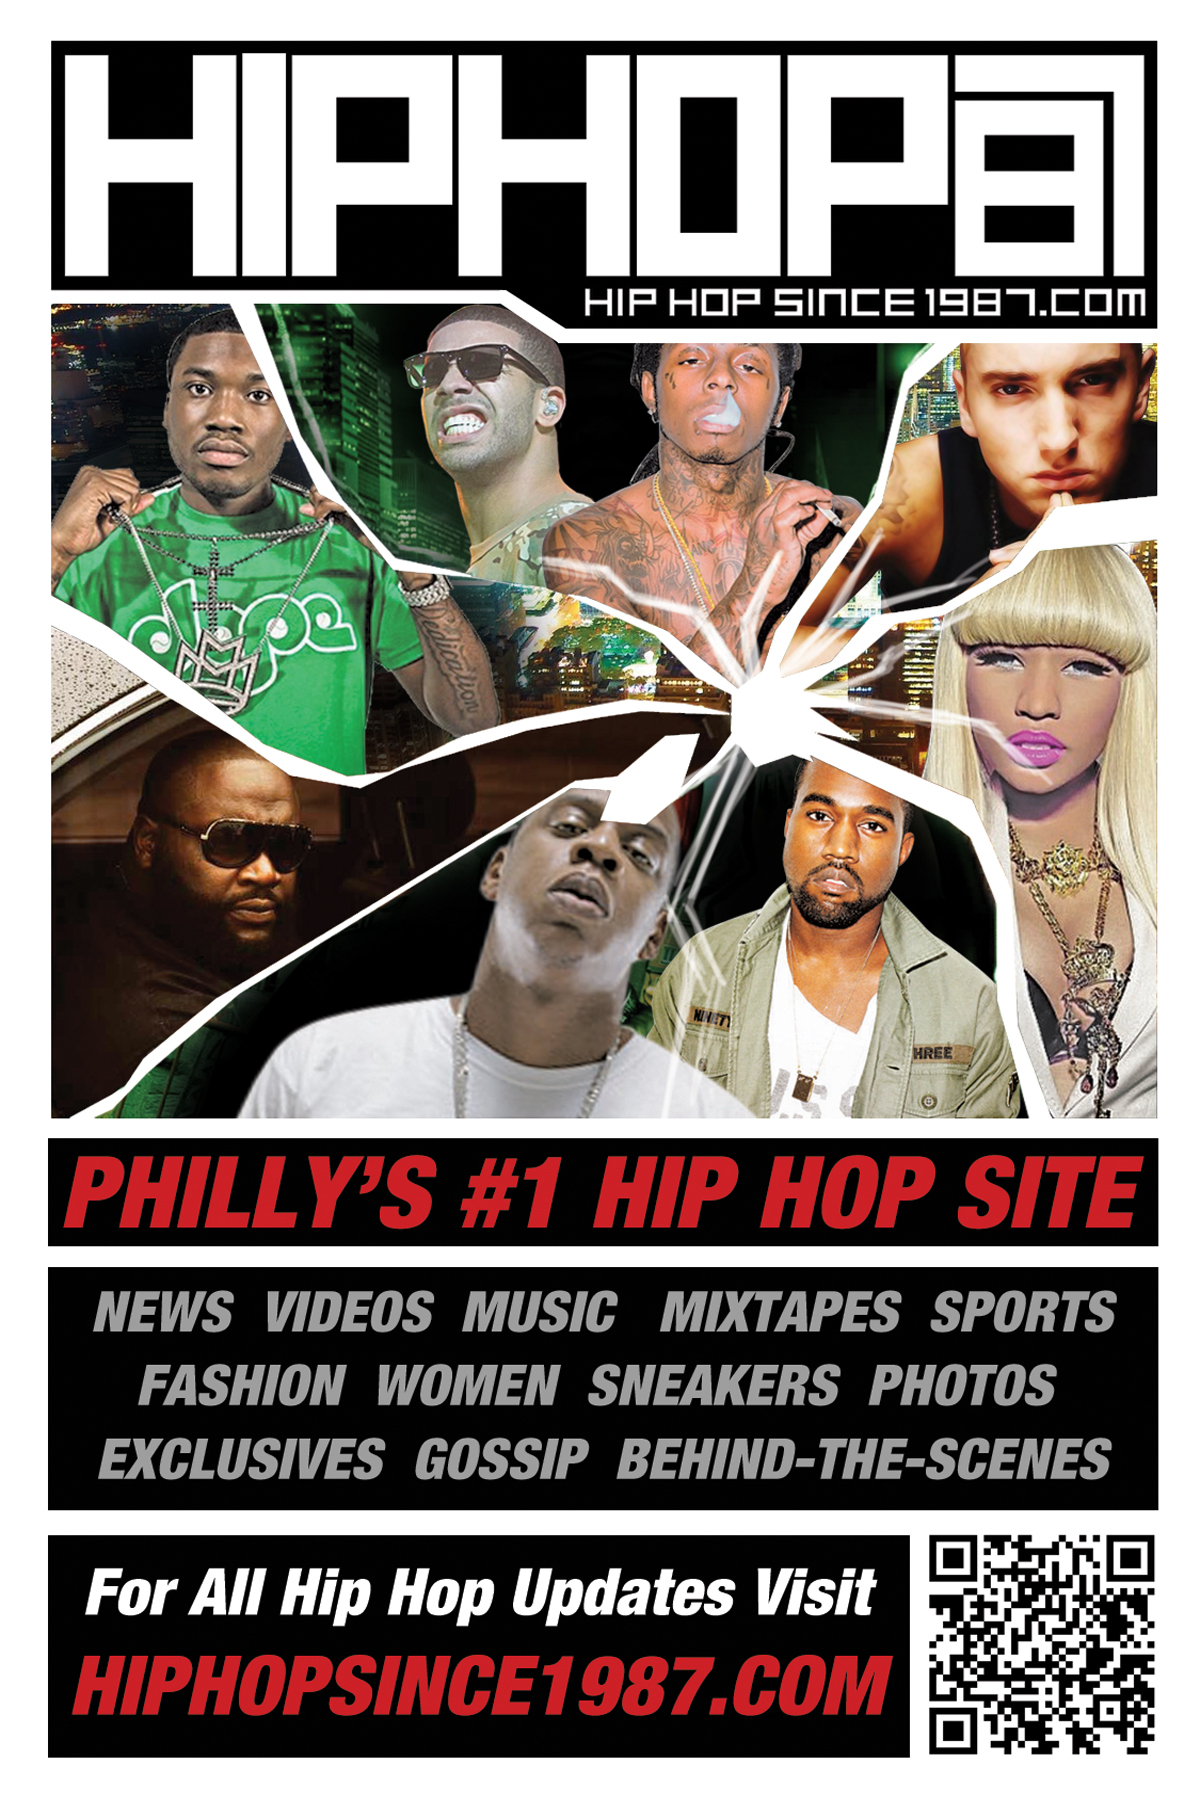 flyer-print-front The Top 5 Philly Artists Right Now!!!